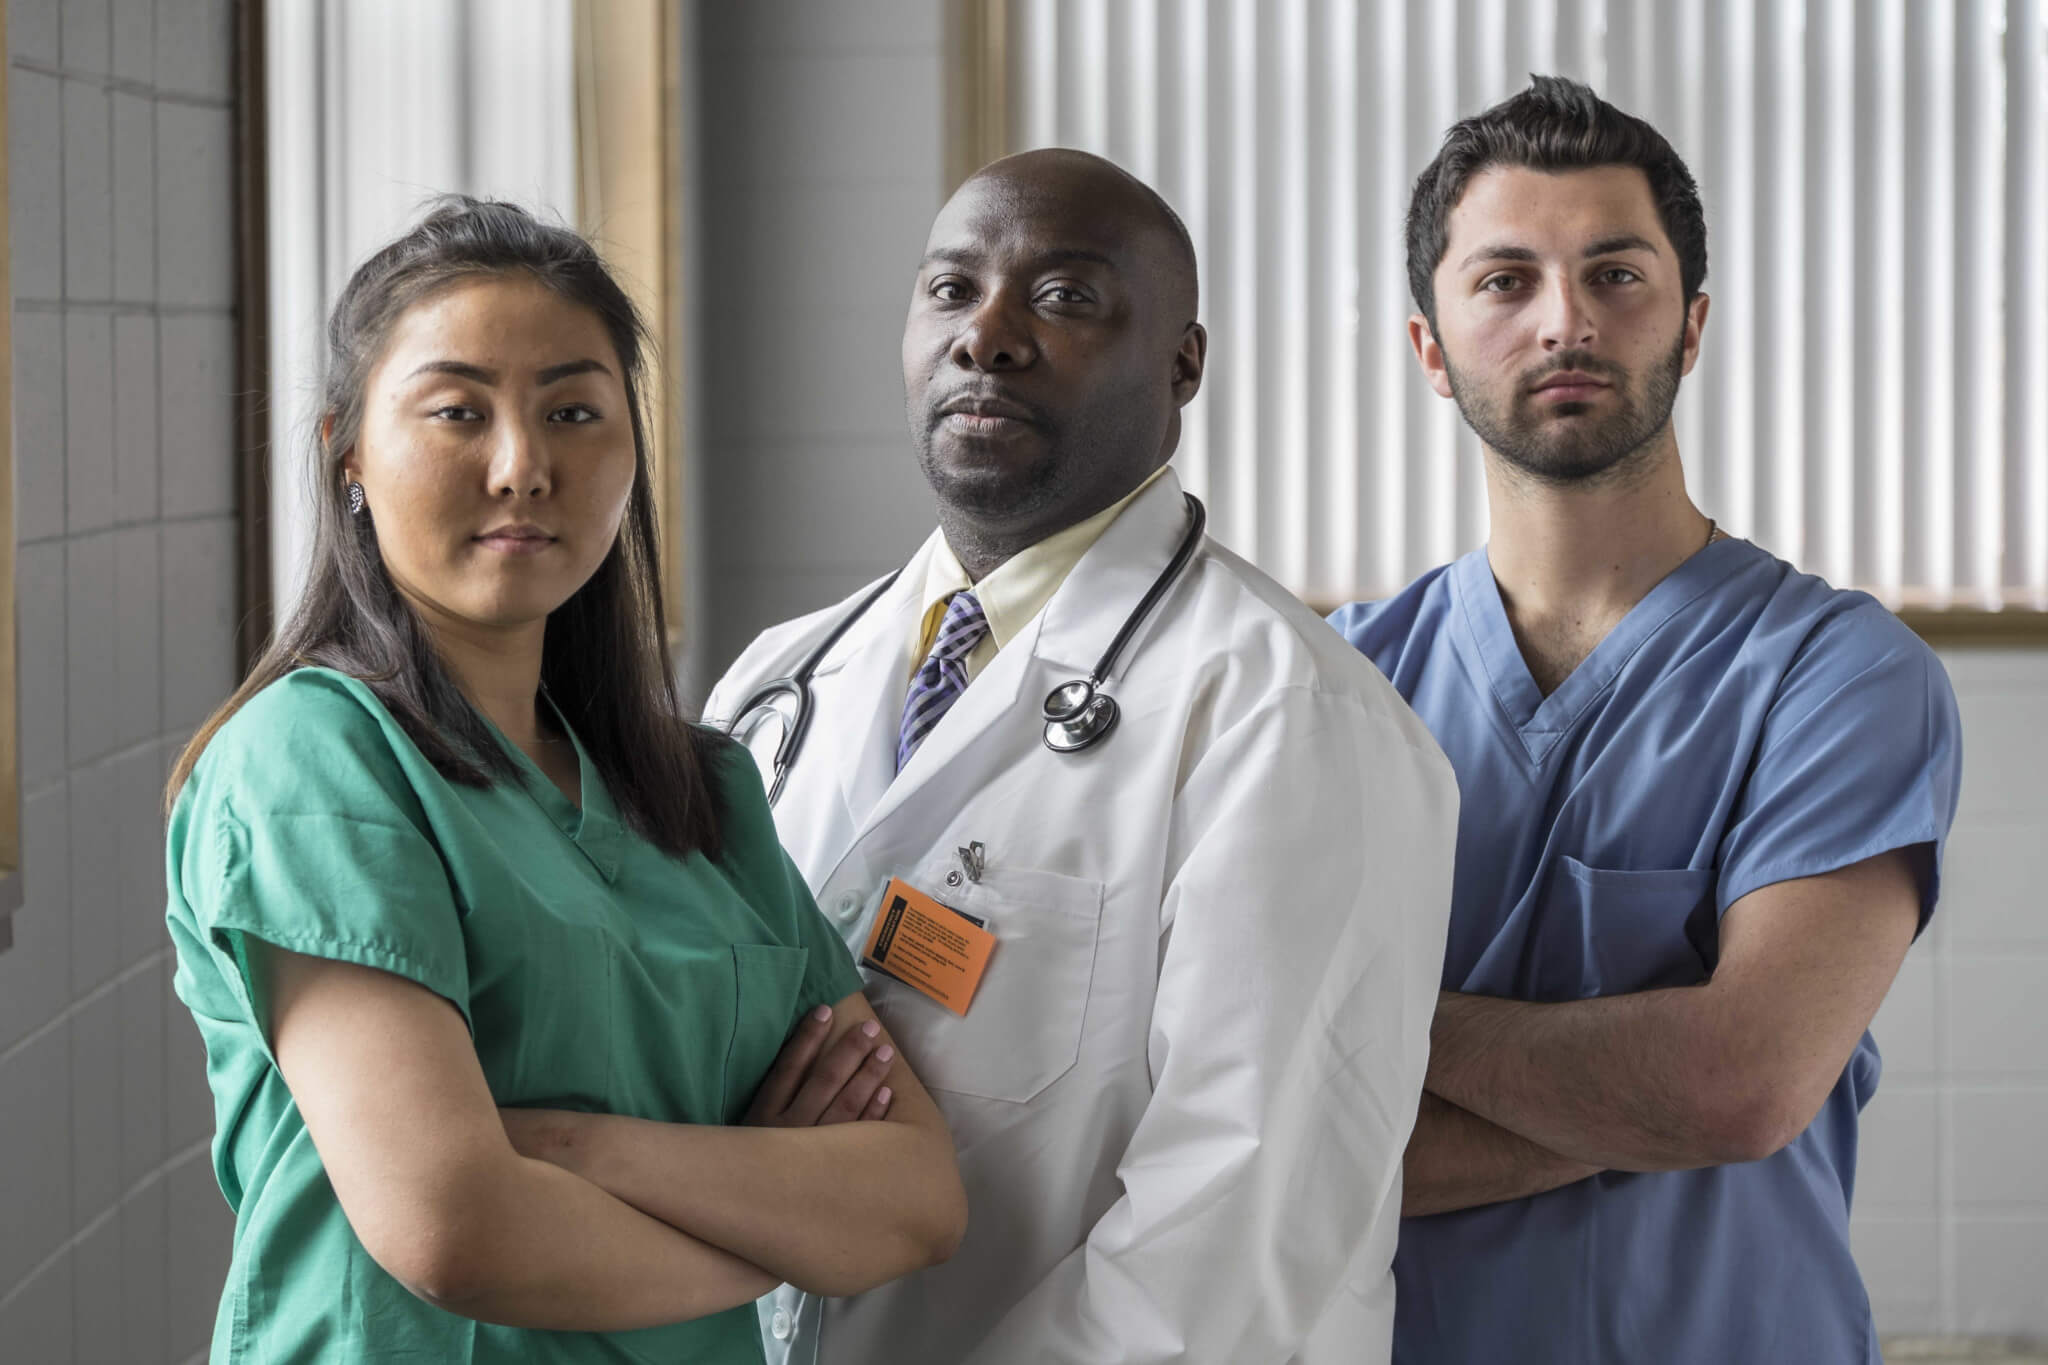 Doctors dealing with patient bias and prejudice